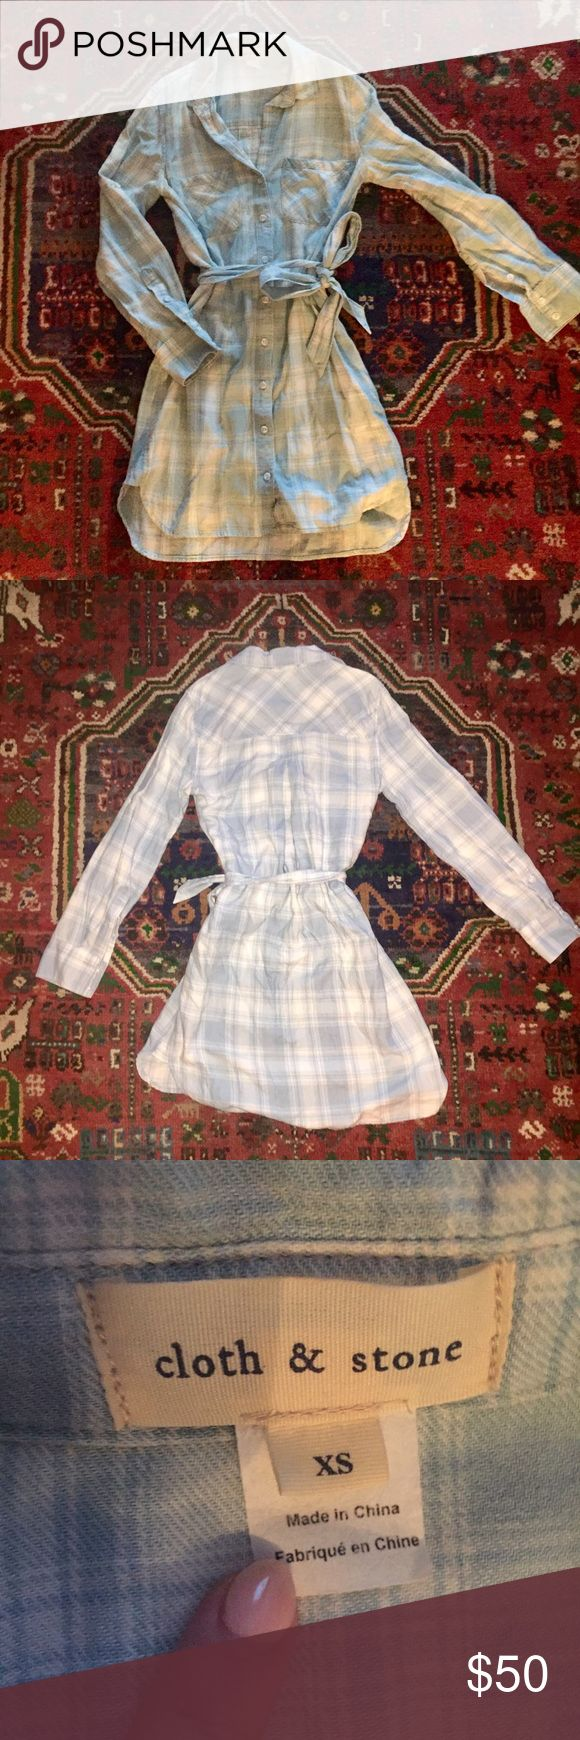 Cloth + Stone Plaid Dress Long-sleeves, soft flannel material, worn a handful of times Anthropologie Dresses Long Sleeve